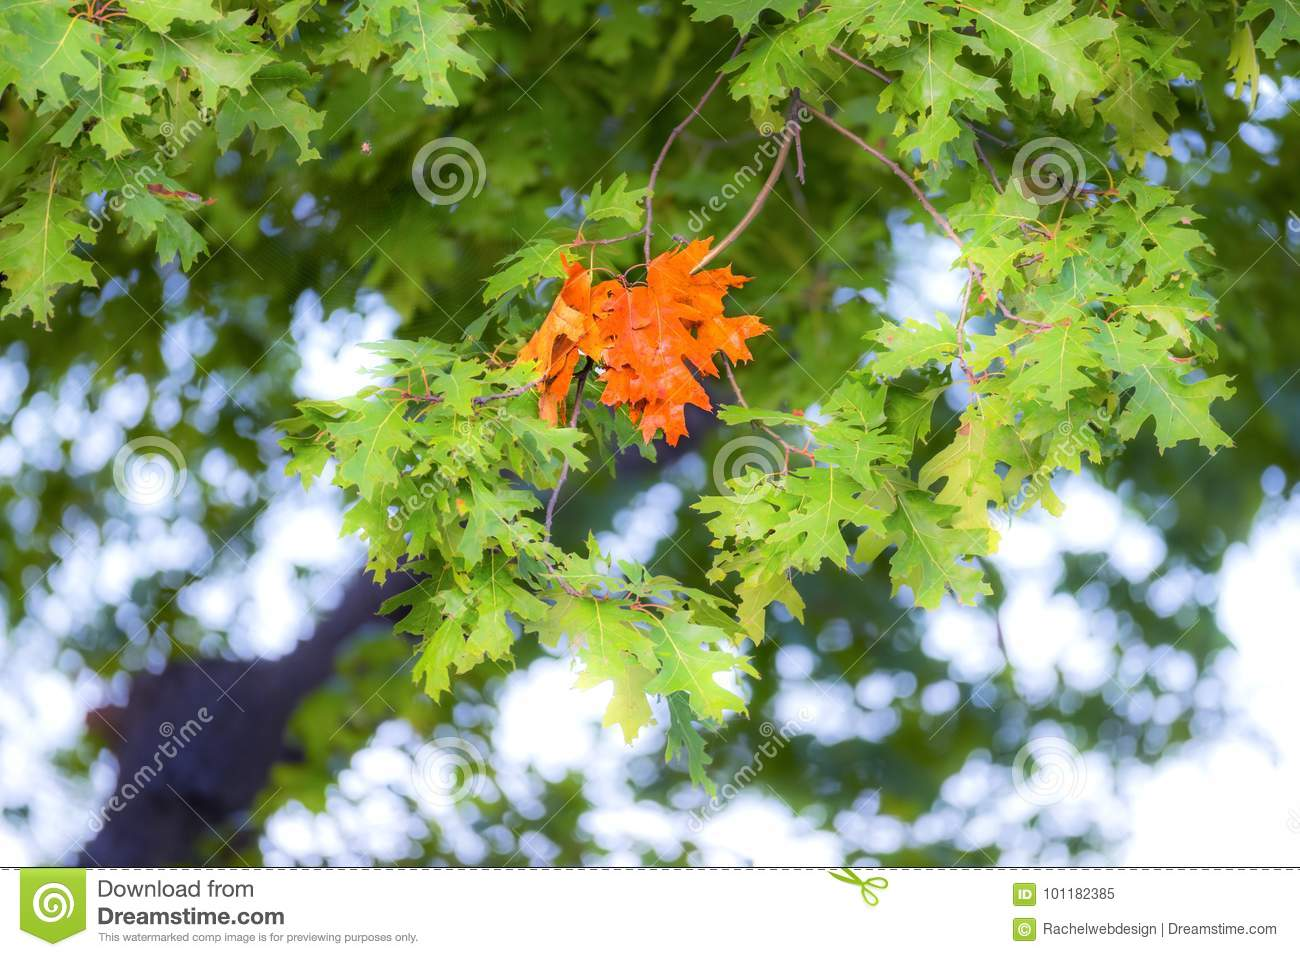 First Group Of Leaves Changed Color On Oak Tree, Vibrant Orange ...